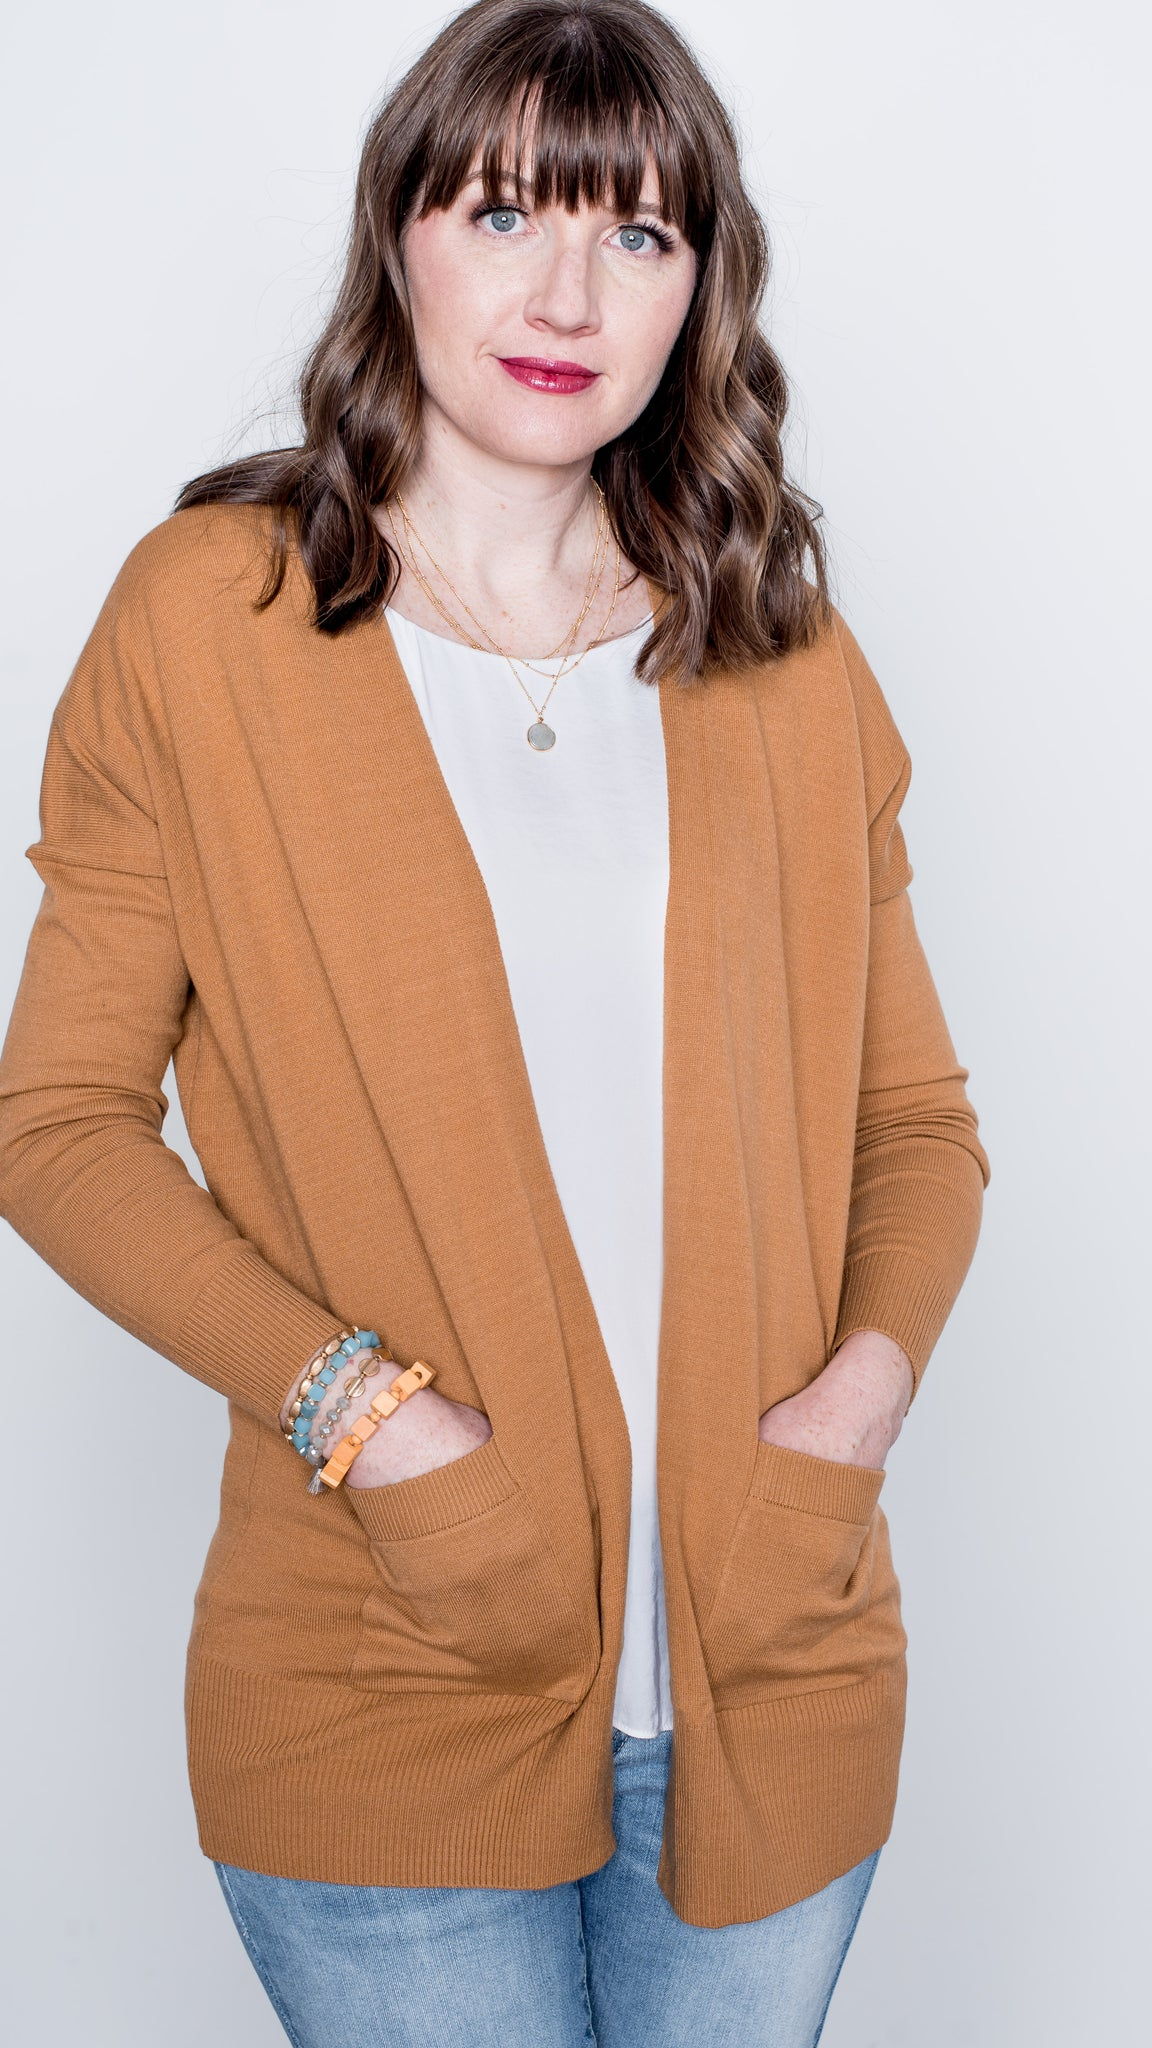 Jessie Long Sleeve Open Front Cardigan with Pockets - Caramel – Layered By  Cake 8caba0fbb